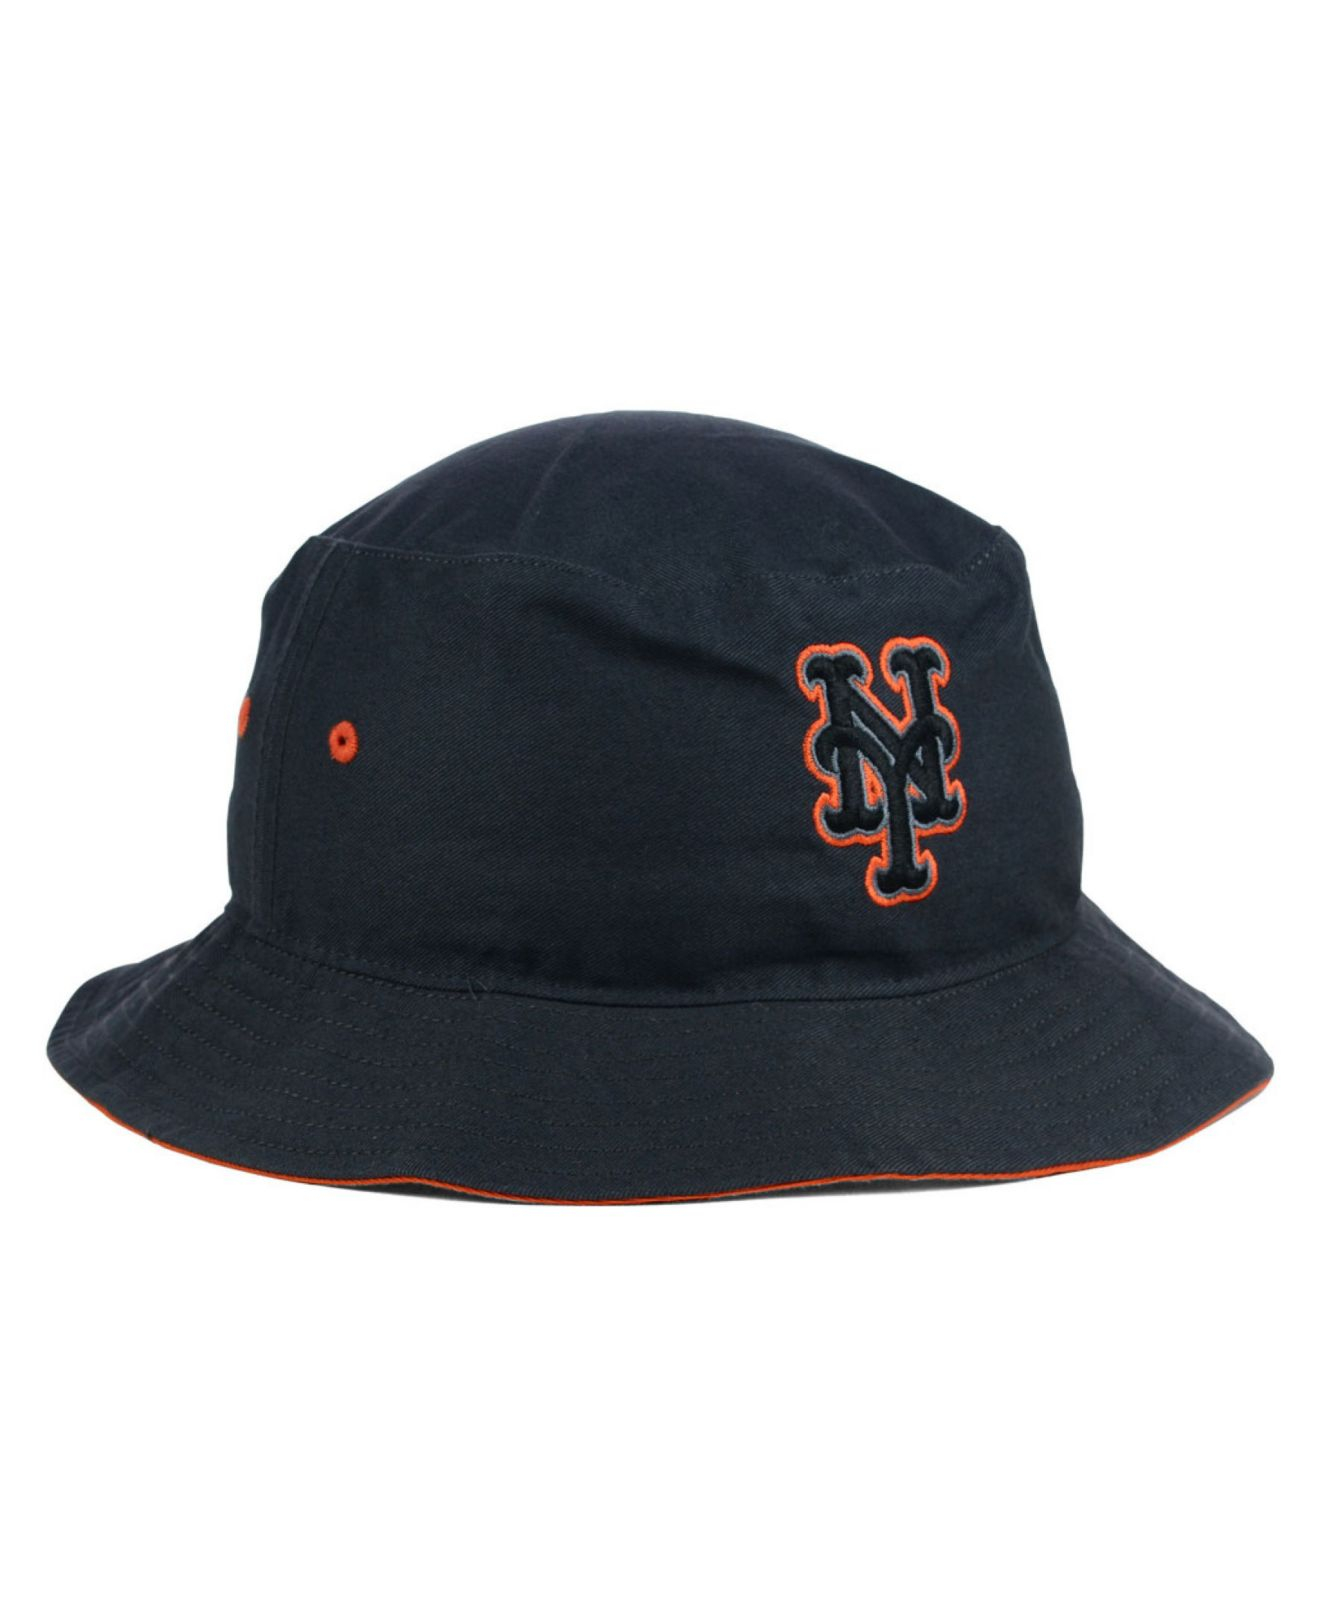 lowest price febb2 371ef ... france lyst 47 brand new york mets turbo bucket hat in gray 937c3 11a70